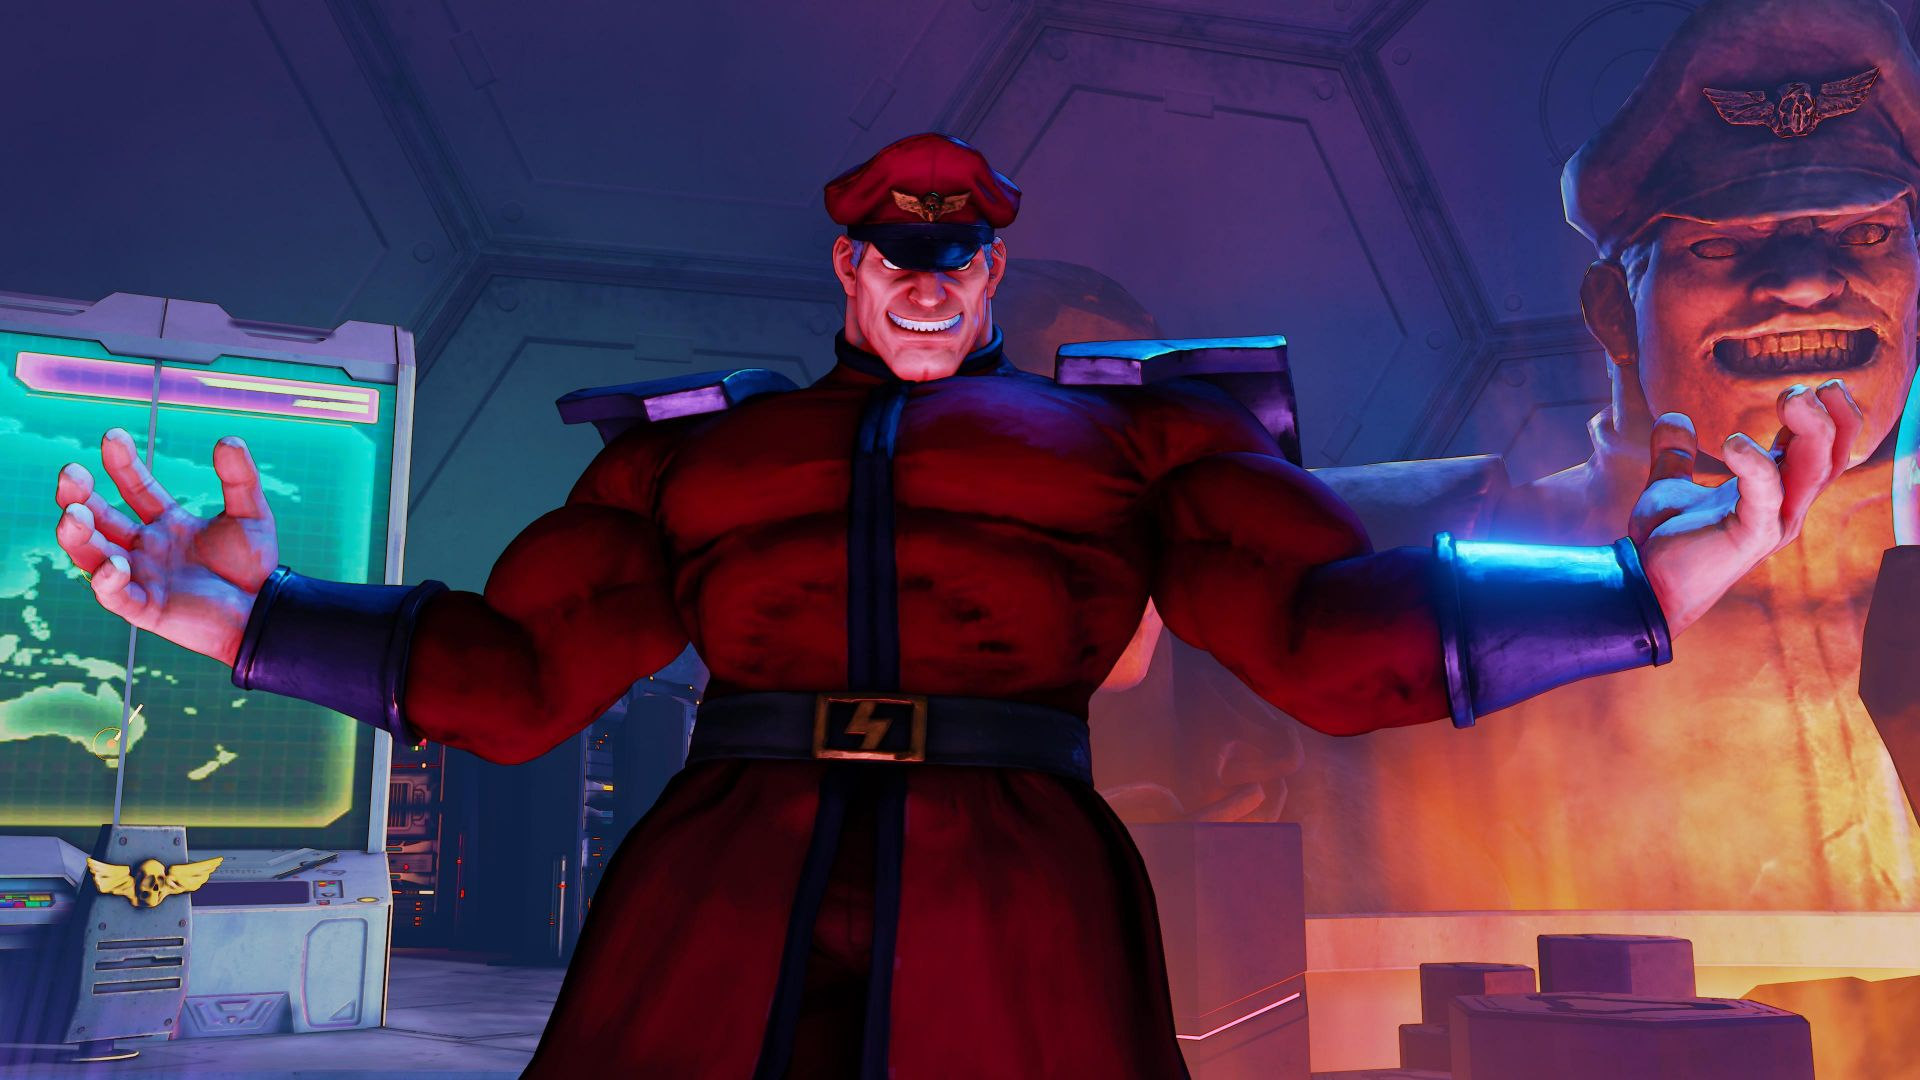 Street Fighter 5, М.Бисон, Лучшие игры, фентези, ПК, PS4, Street Fighter 5, M. BISON, Best Games, fantasy, PC, PS4 (horizontal)